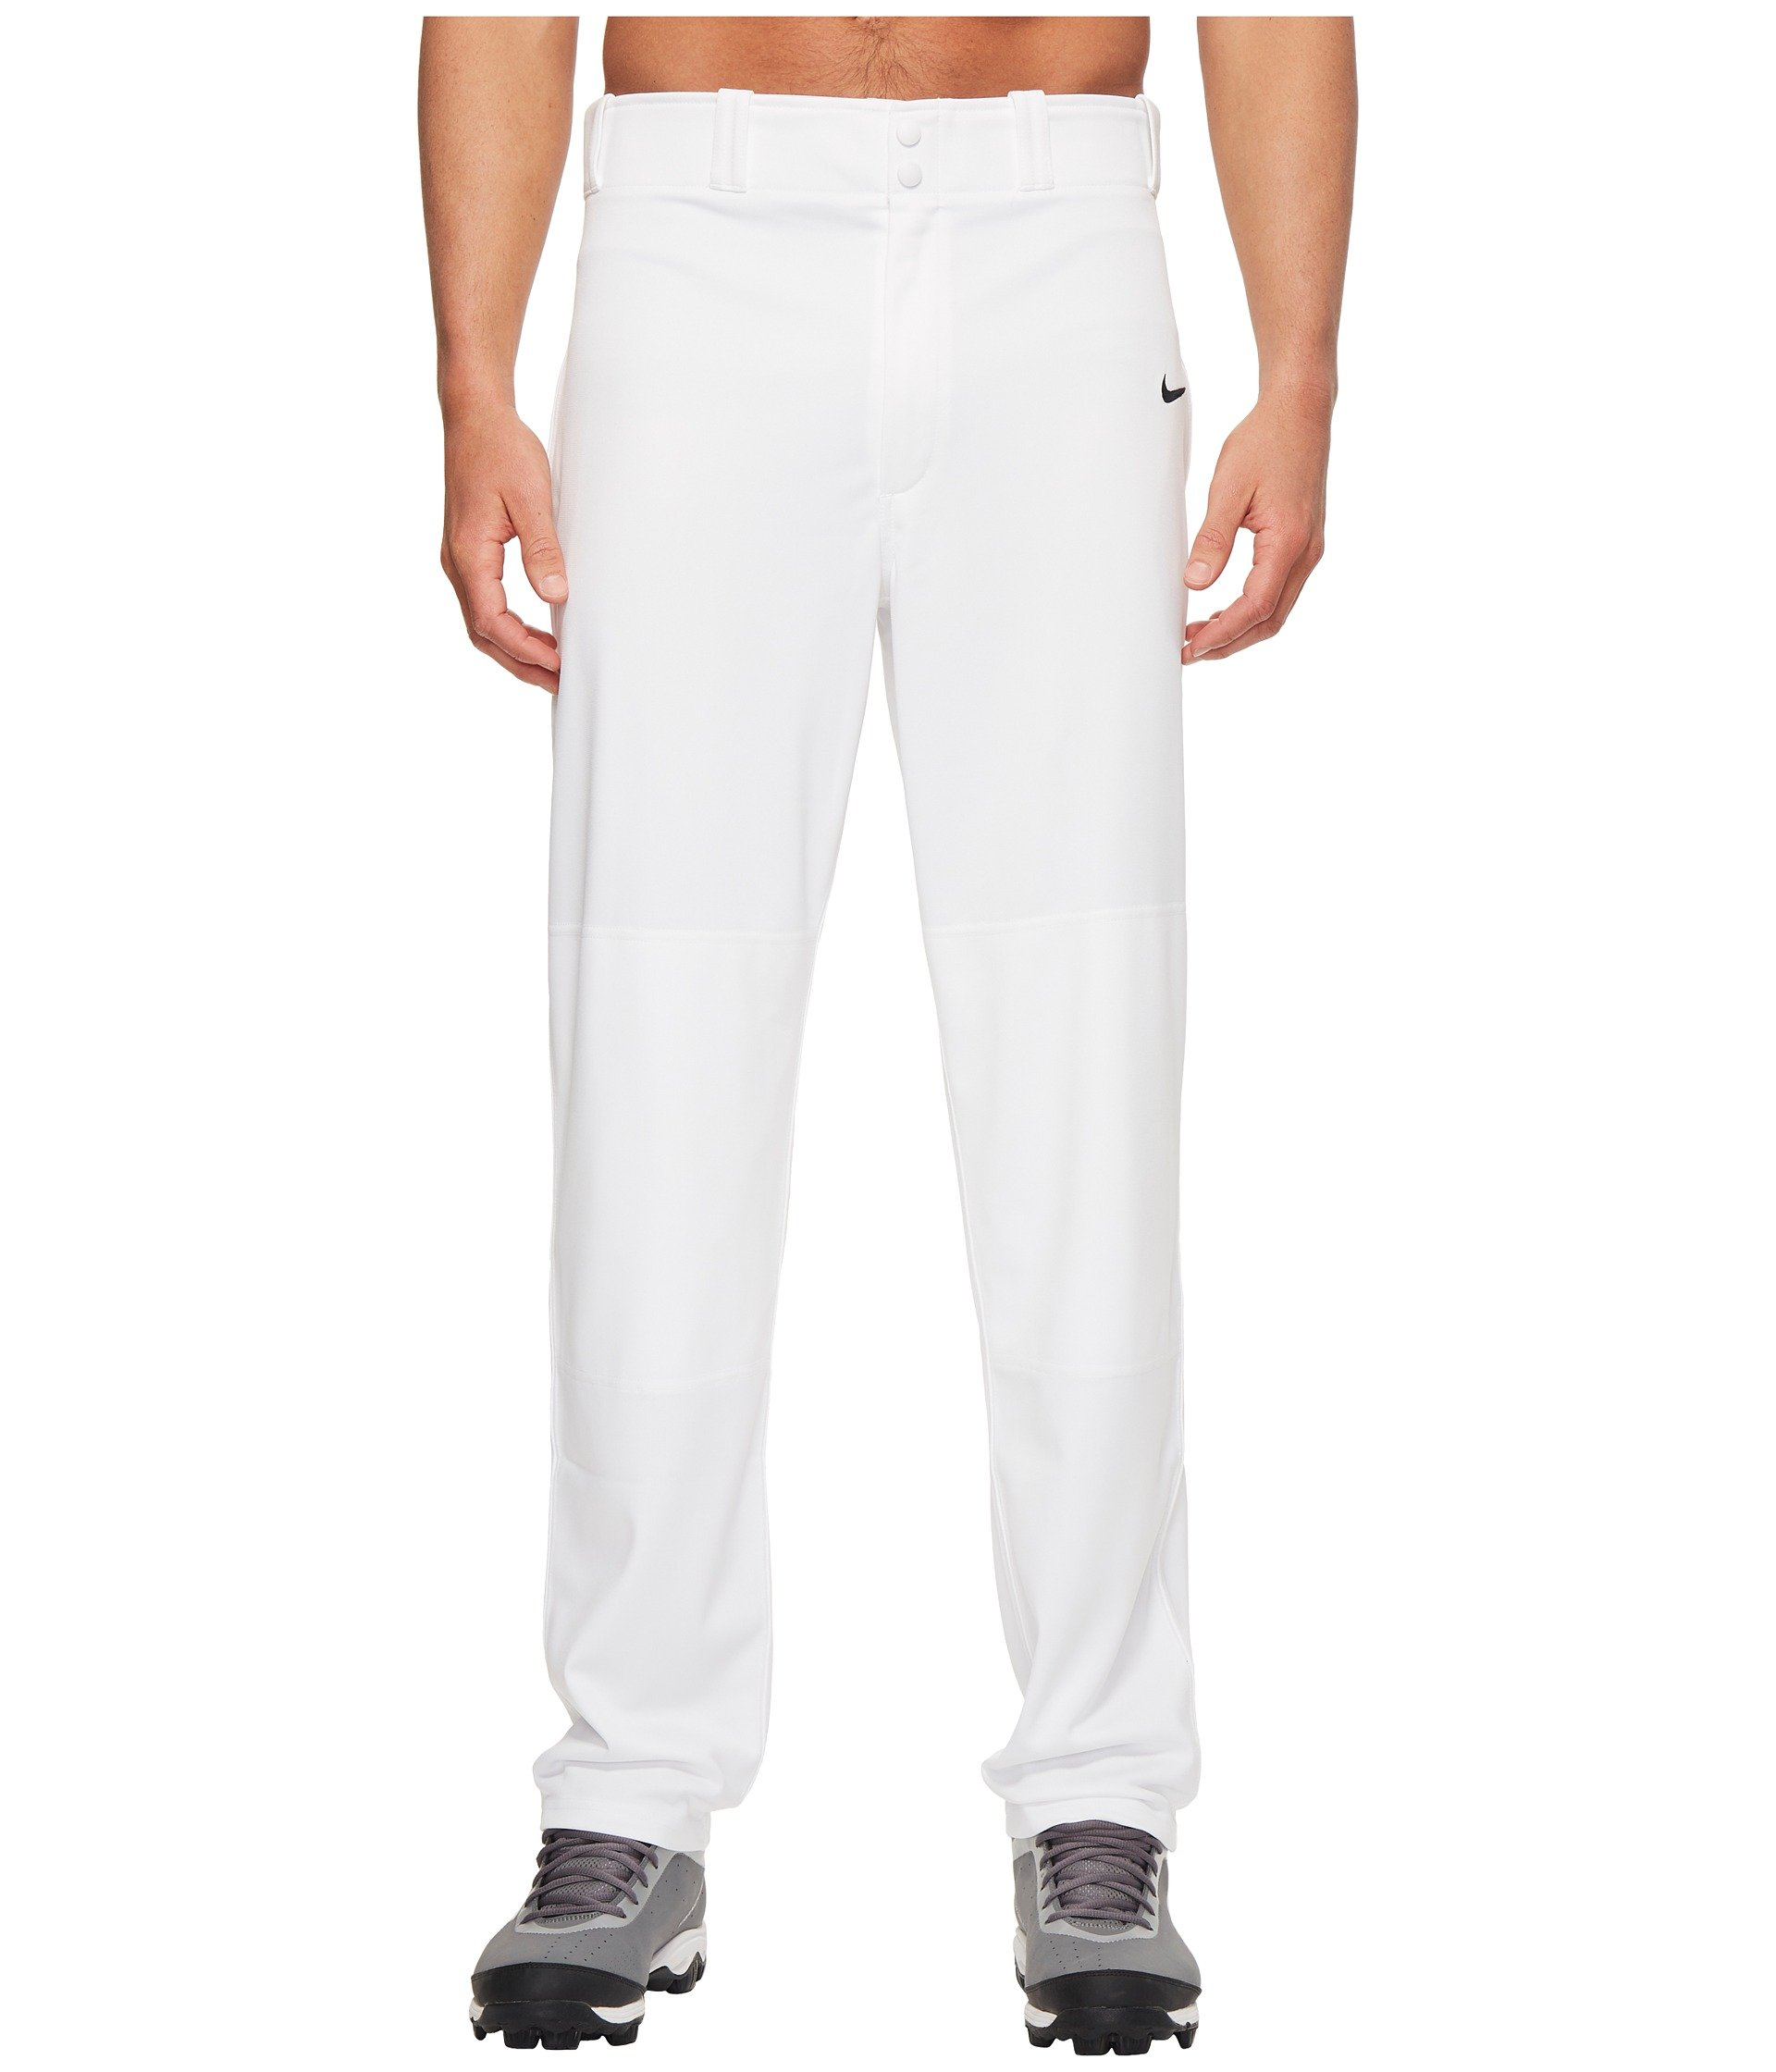 Nike Men's Core Dri-FIT Open Hem Baseball Pants (M, 100 White) by Nike (Image #1)